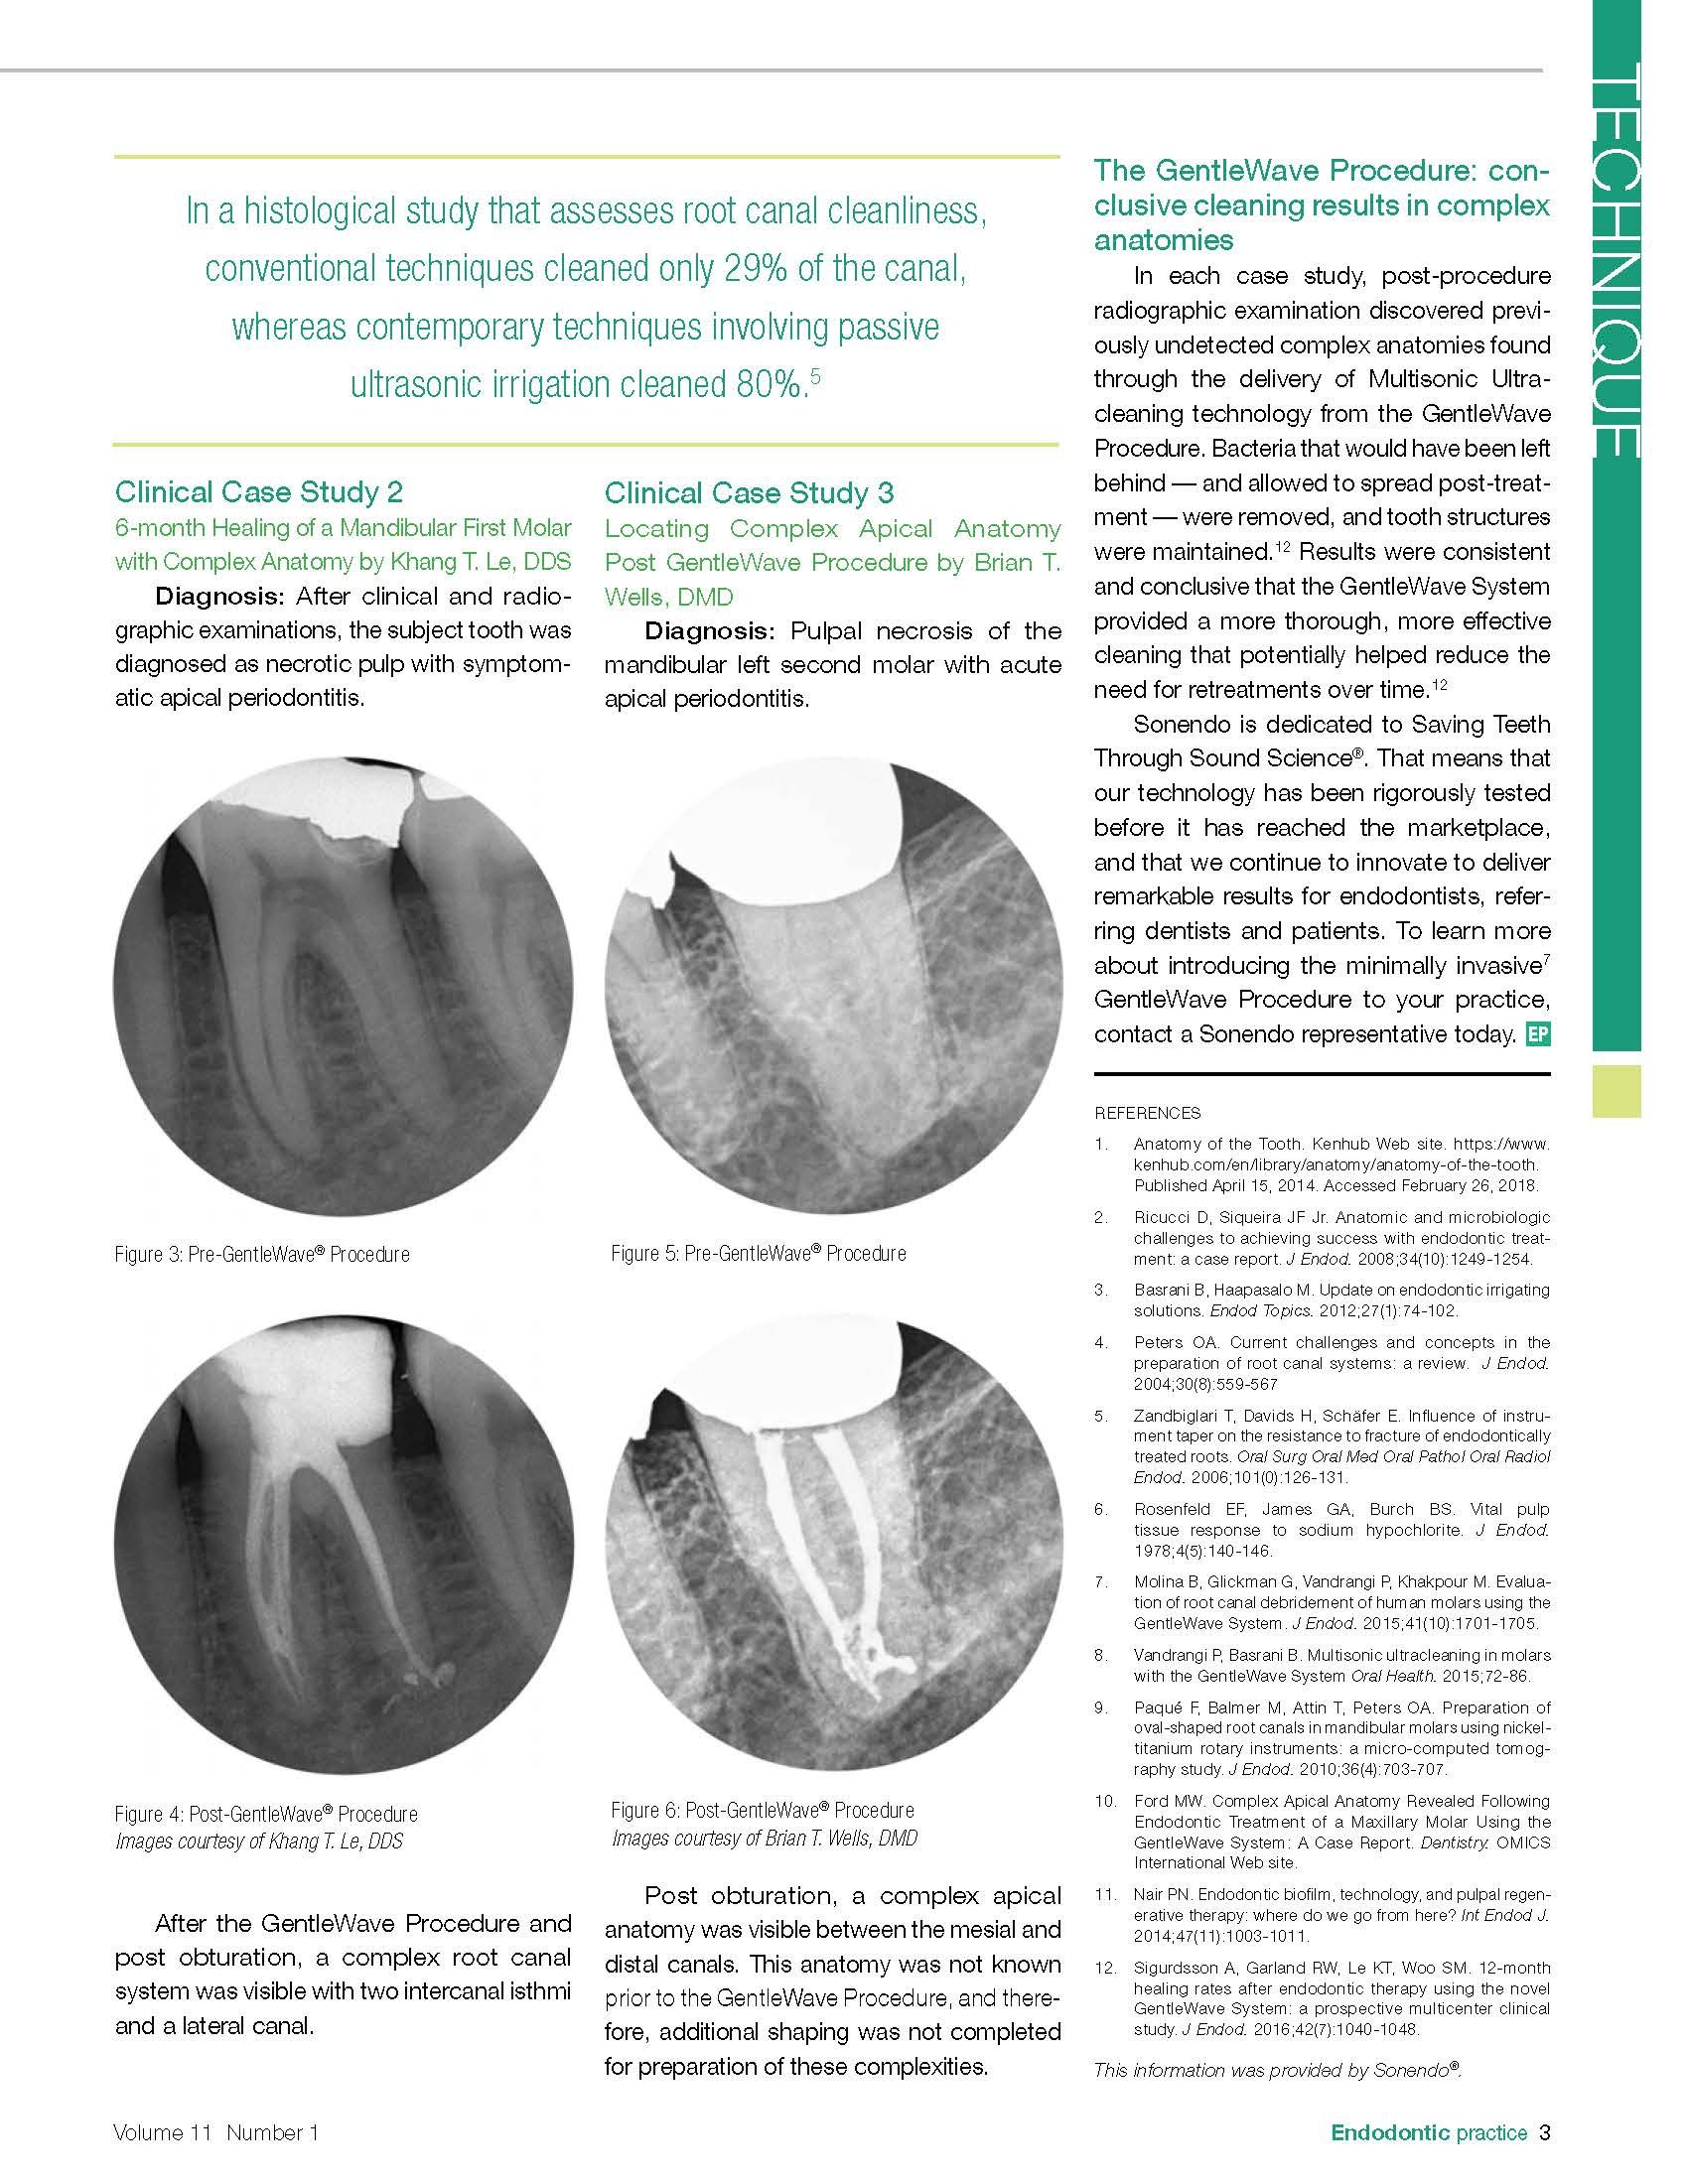 Effectively Treating the Complex Anatomies of Root Canal Systems